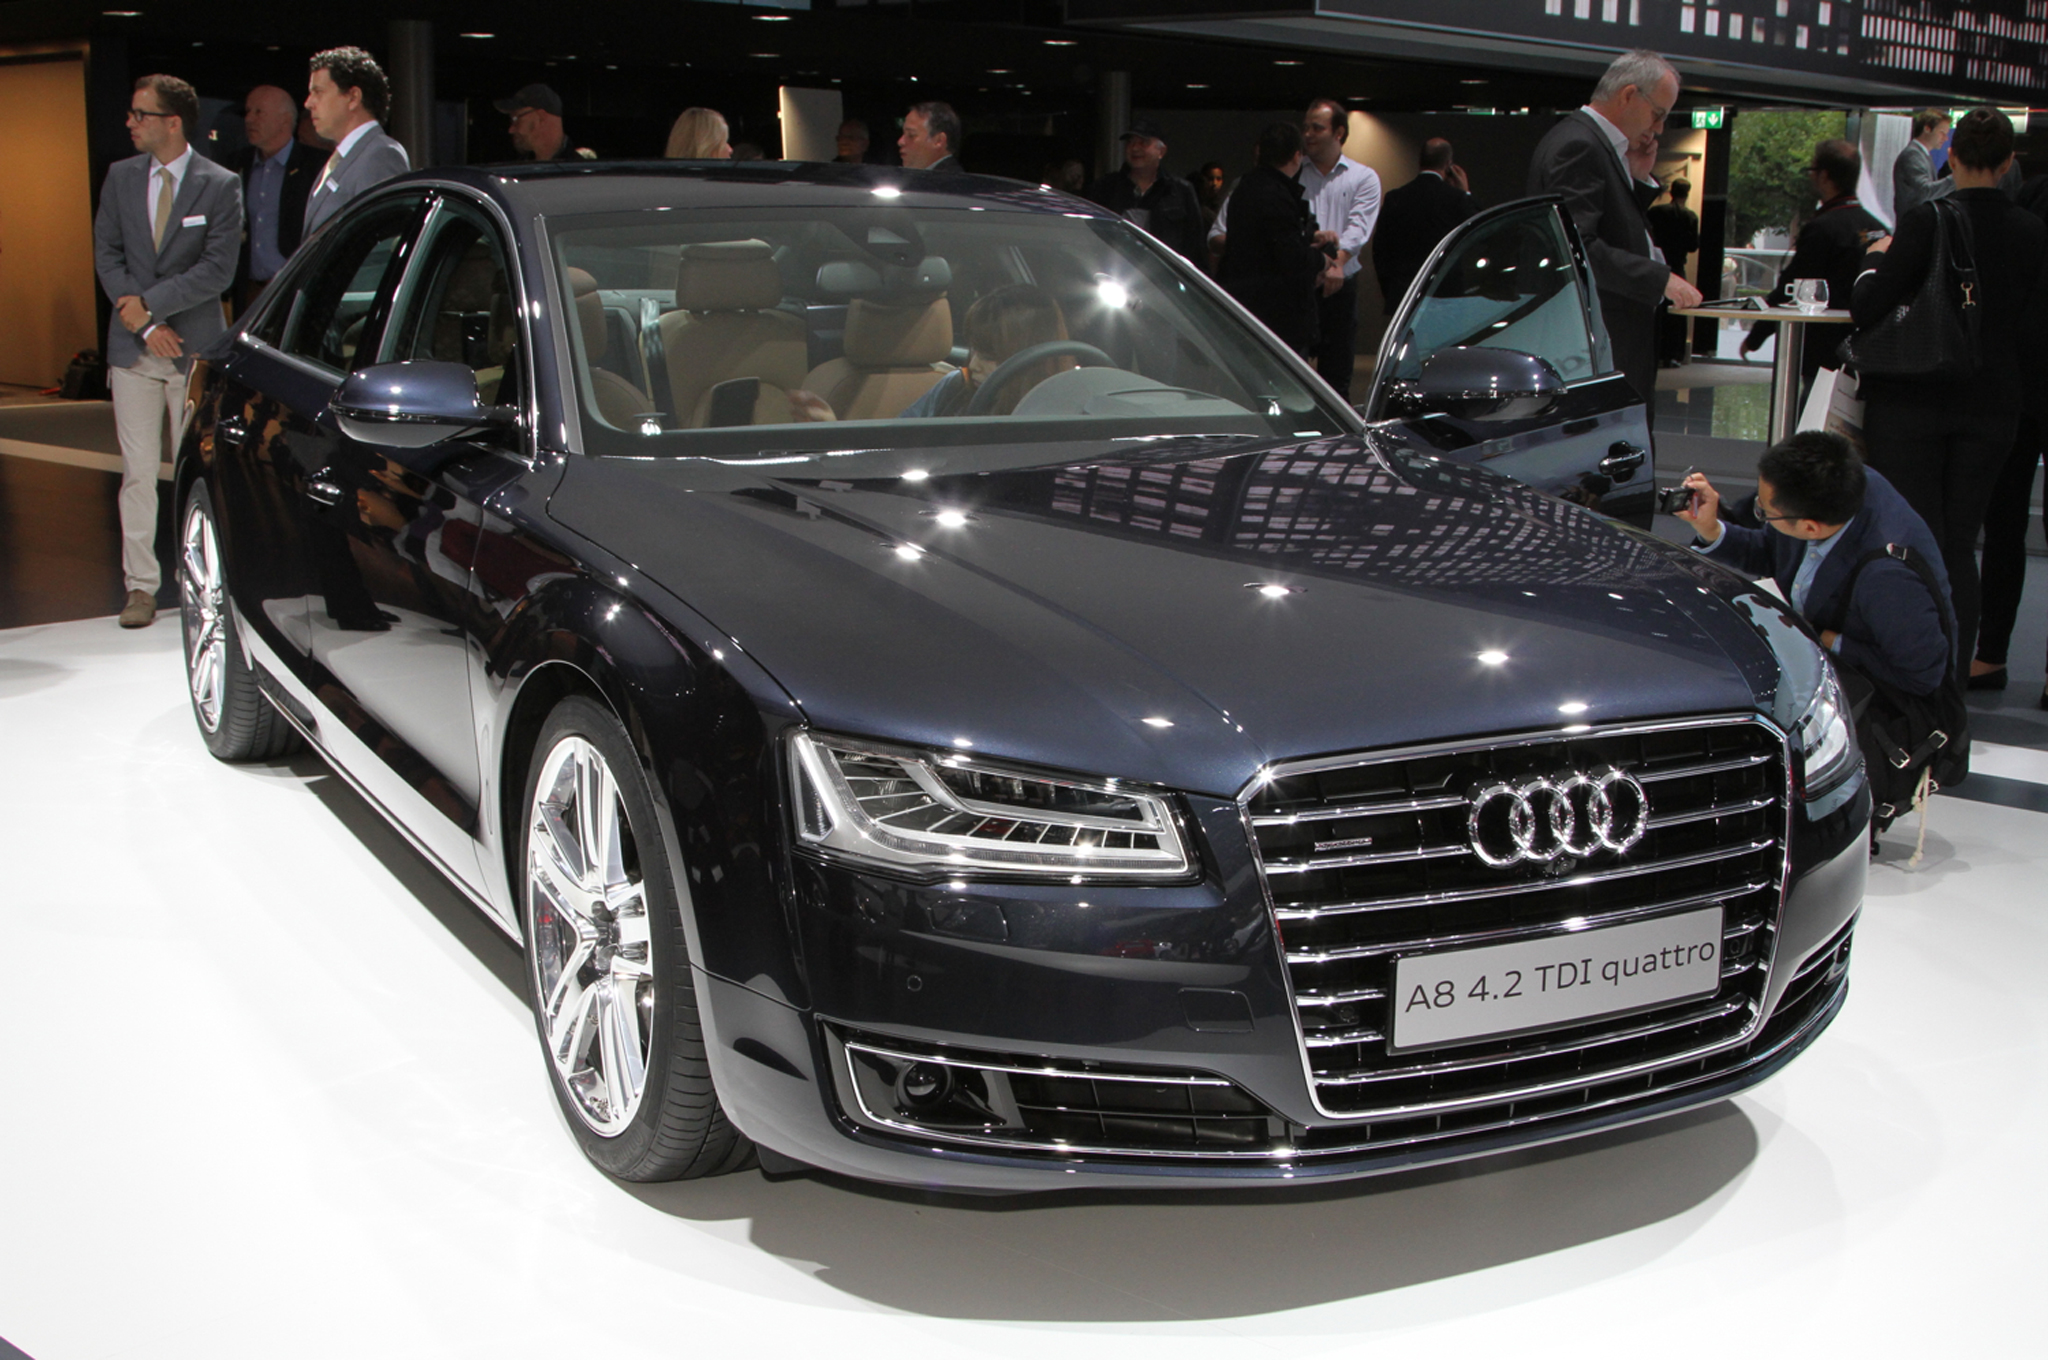 2015 Audi A8 First Look - Motor Trend